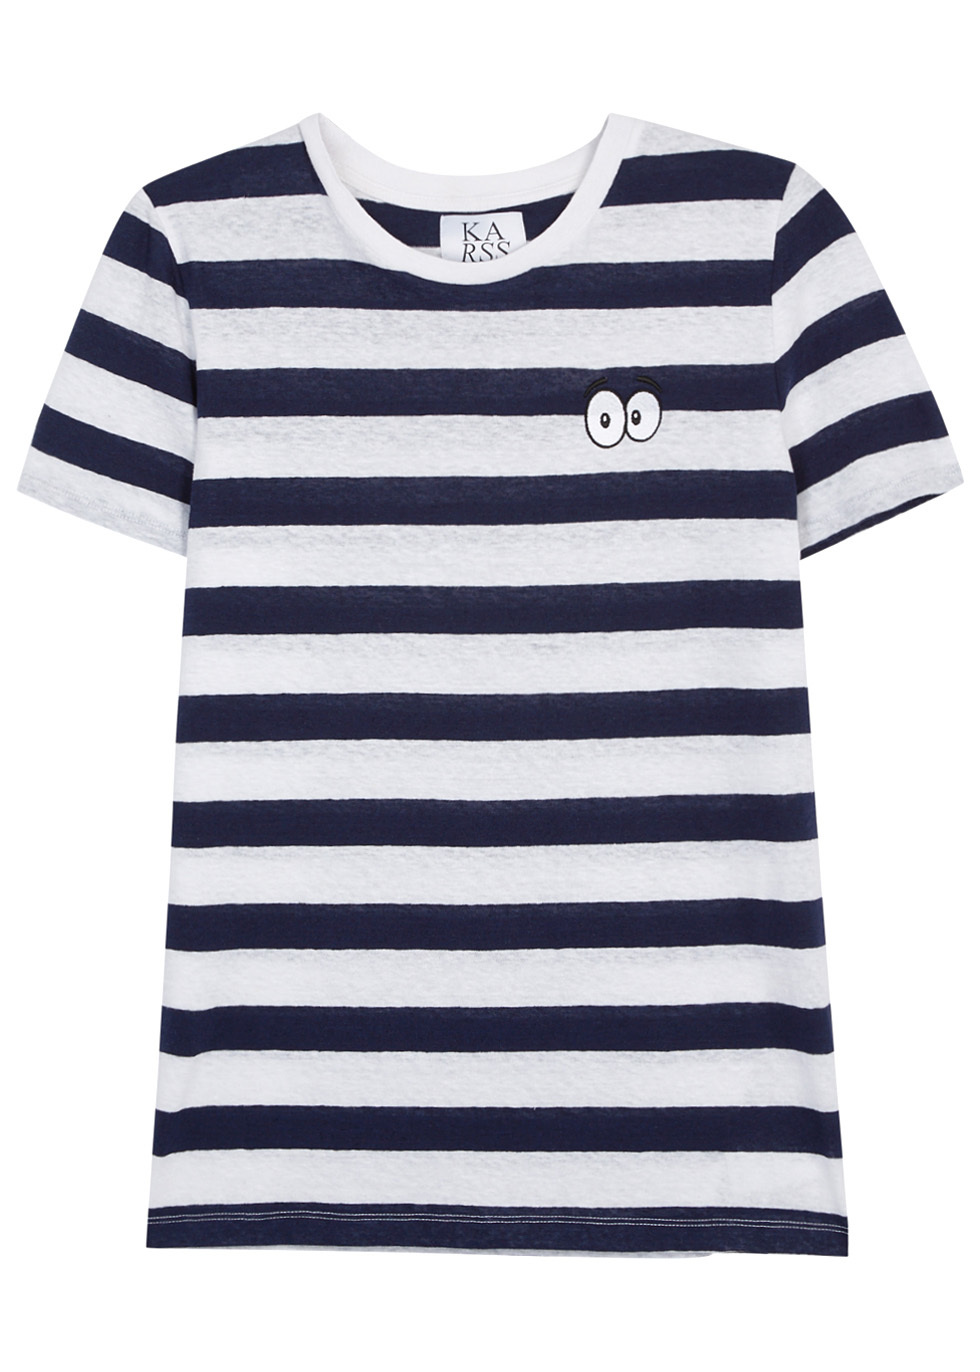 Striped Slubbed Cotton Blend T Shirt - pattern: horizontal stripes; length: below the bottom; style: t-shirt; secondary colour: white; predominant colour: navy; occasions: casual, creative work; fibres: cotton - mix; fit: straight cut; neckline: crew; sleeve length: short sleeve; sleeve style: standard; pattern type: fabric; pattern size: standard; texture group: jersey - stretchy/drapey; wardrobe: basic; season: s/s 2017